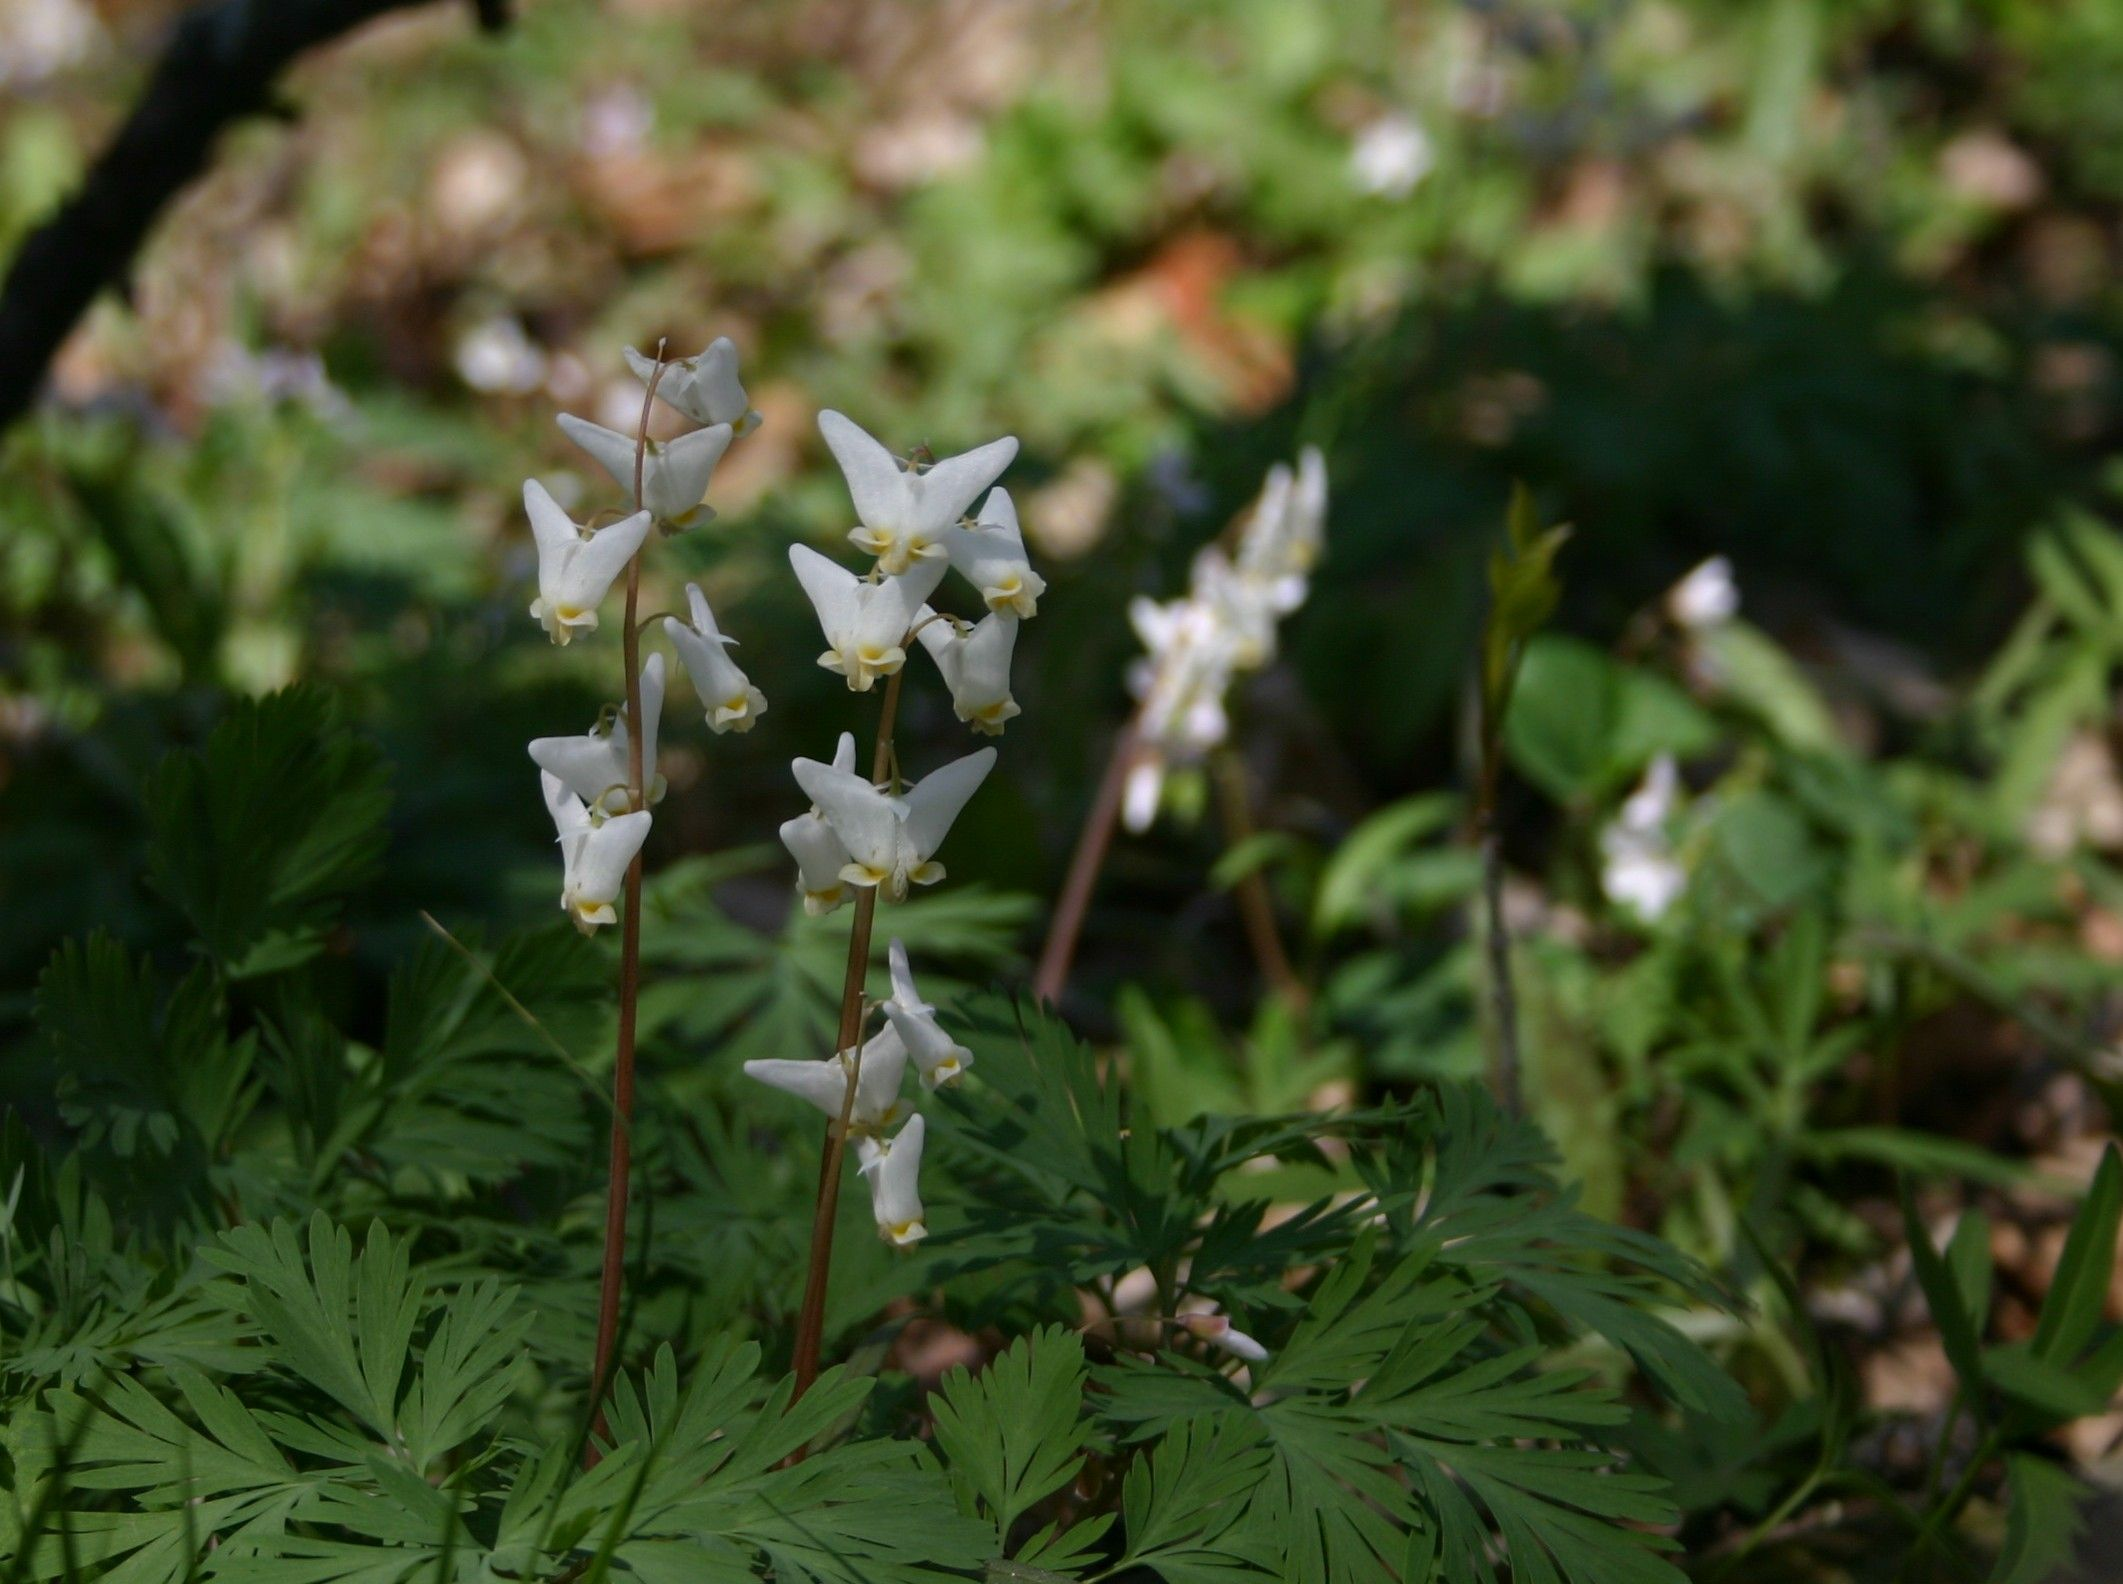 Dutchmens Breeches Woodland Flowers That Grow In Our Woods In The